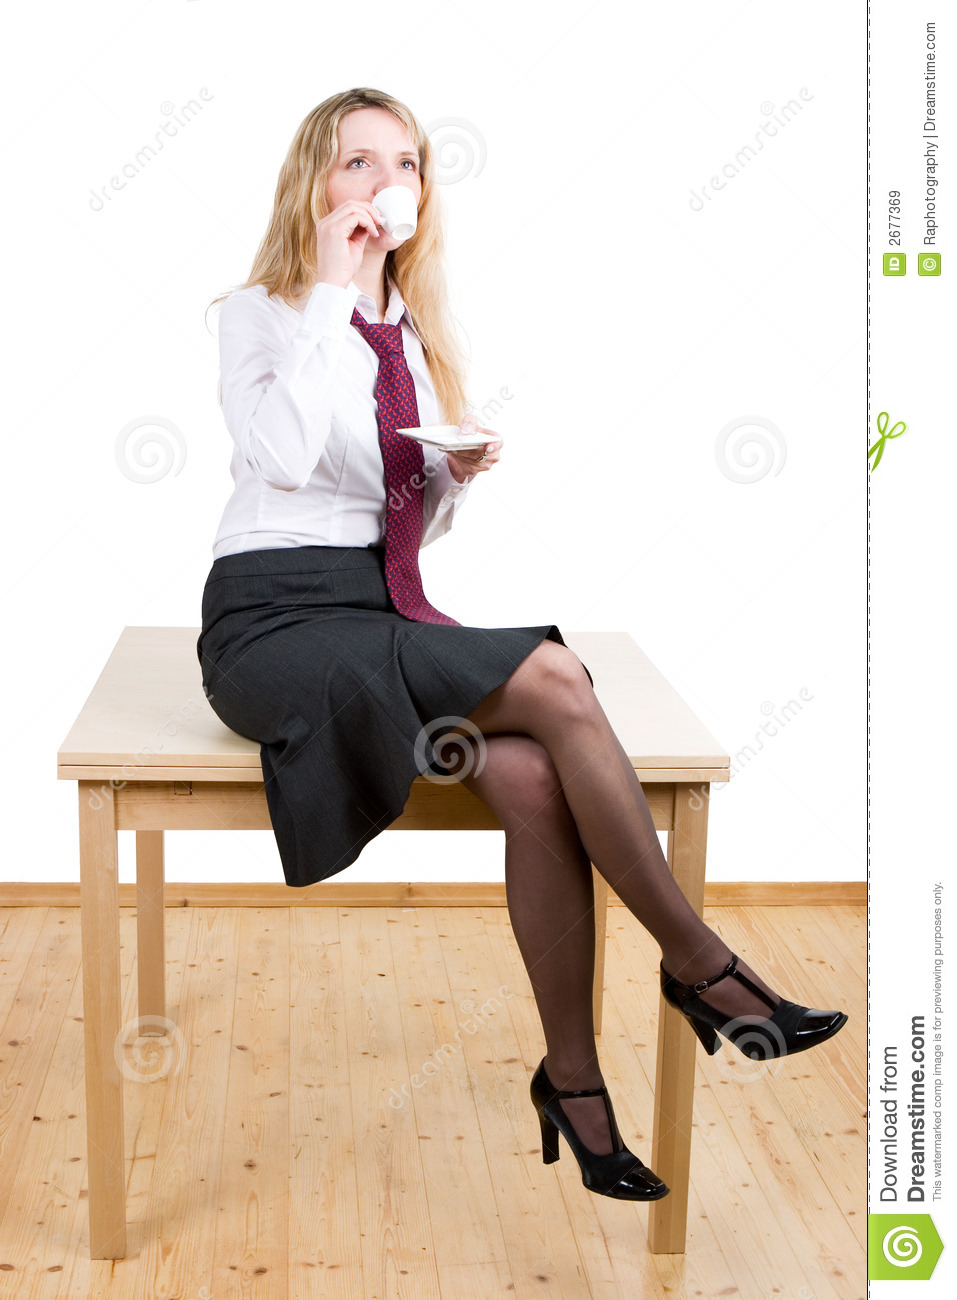 Woman Sitting On A Table Royalty Free Stock Images - Image: 2677369